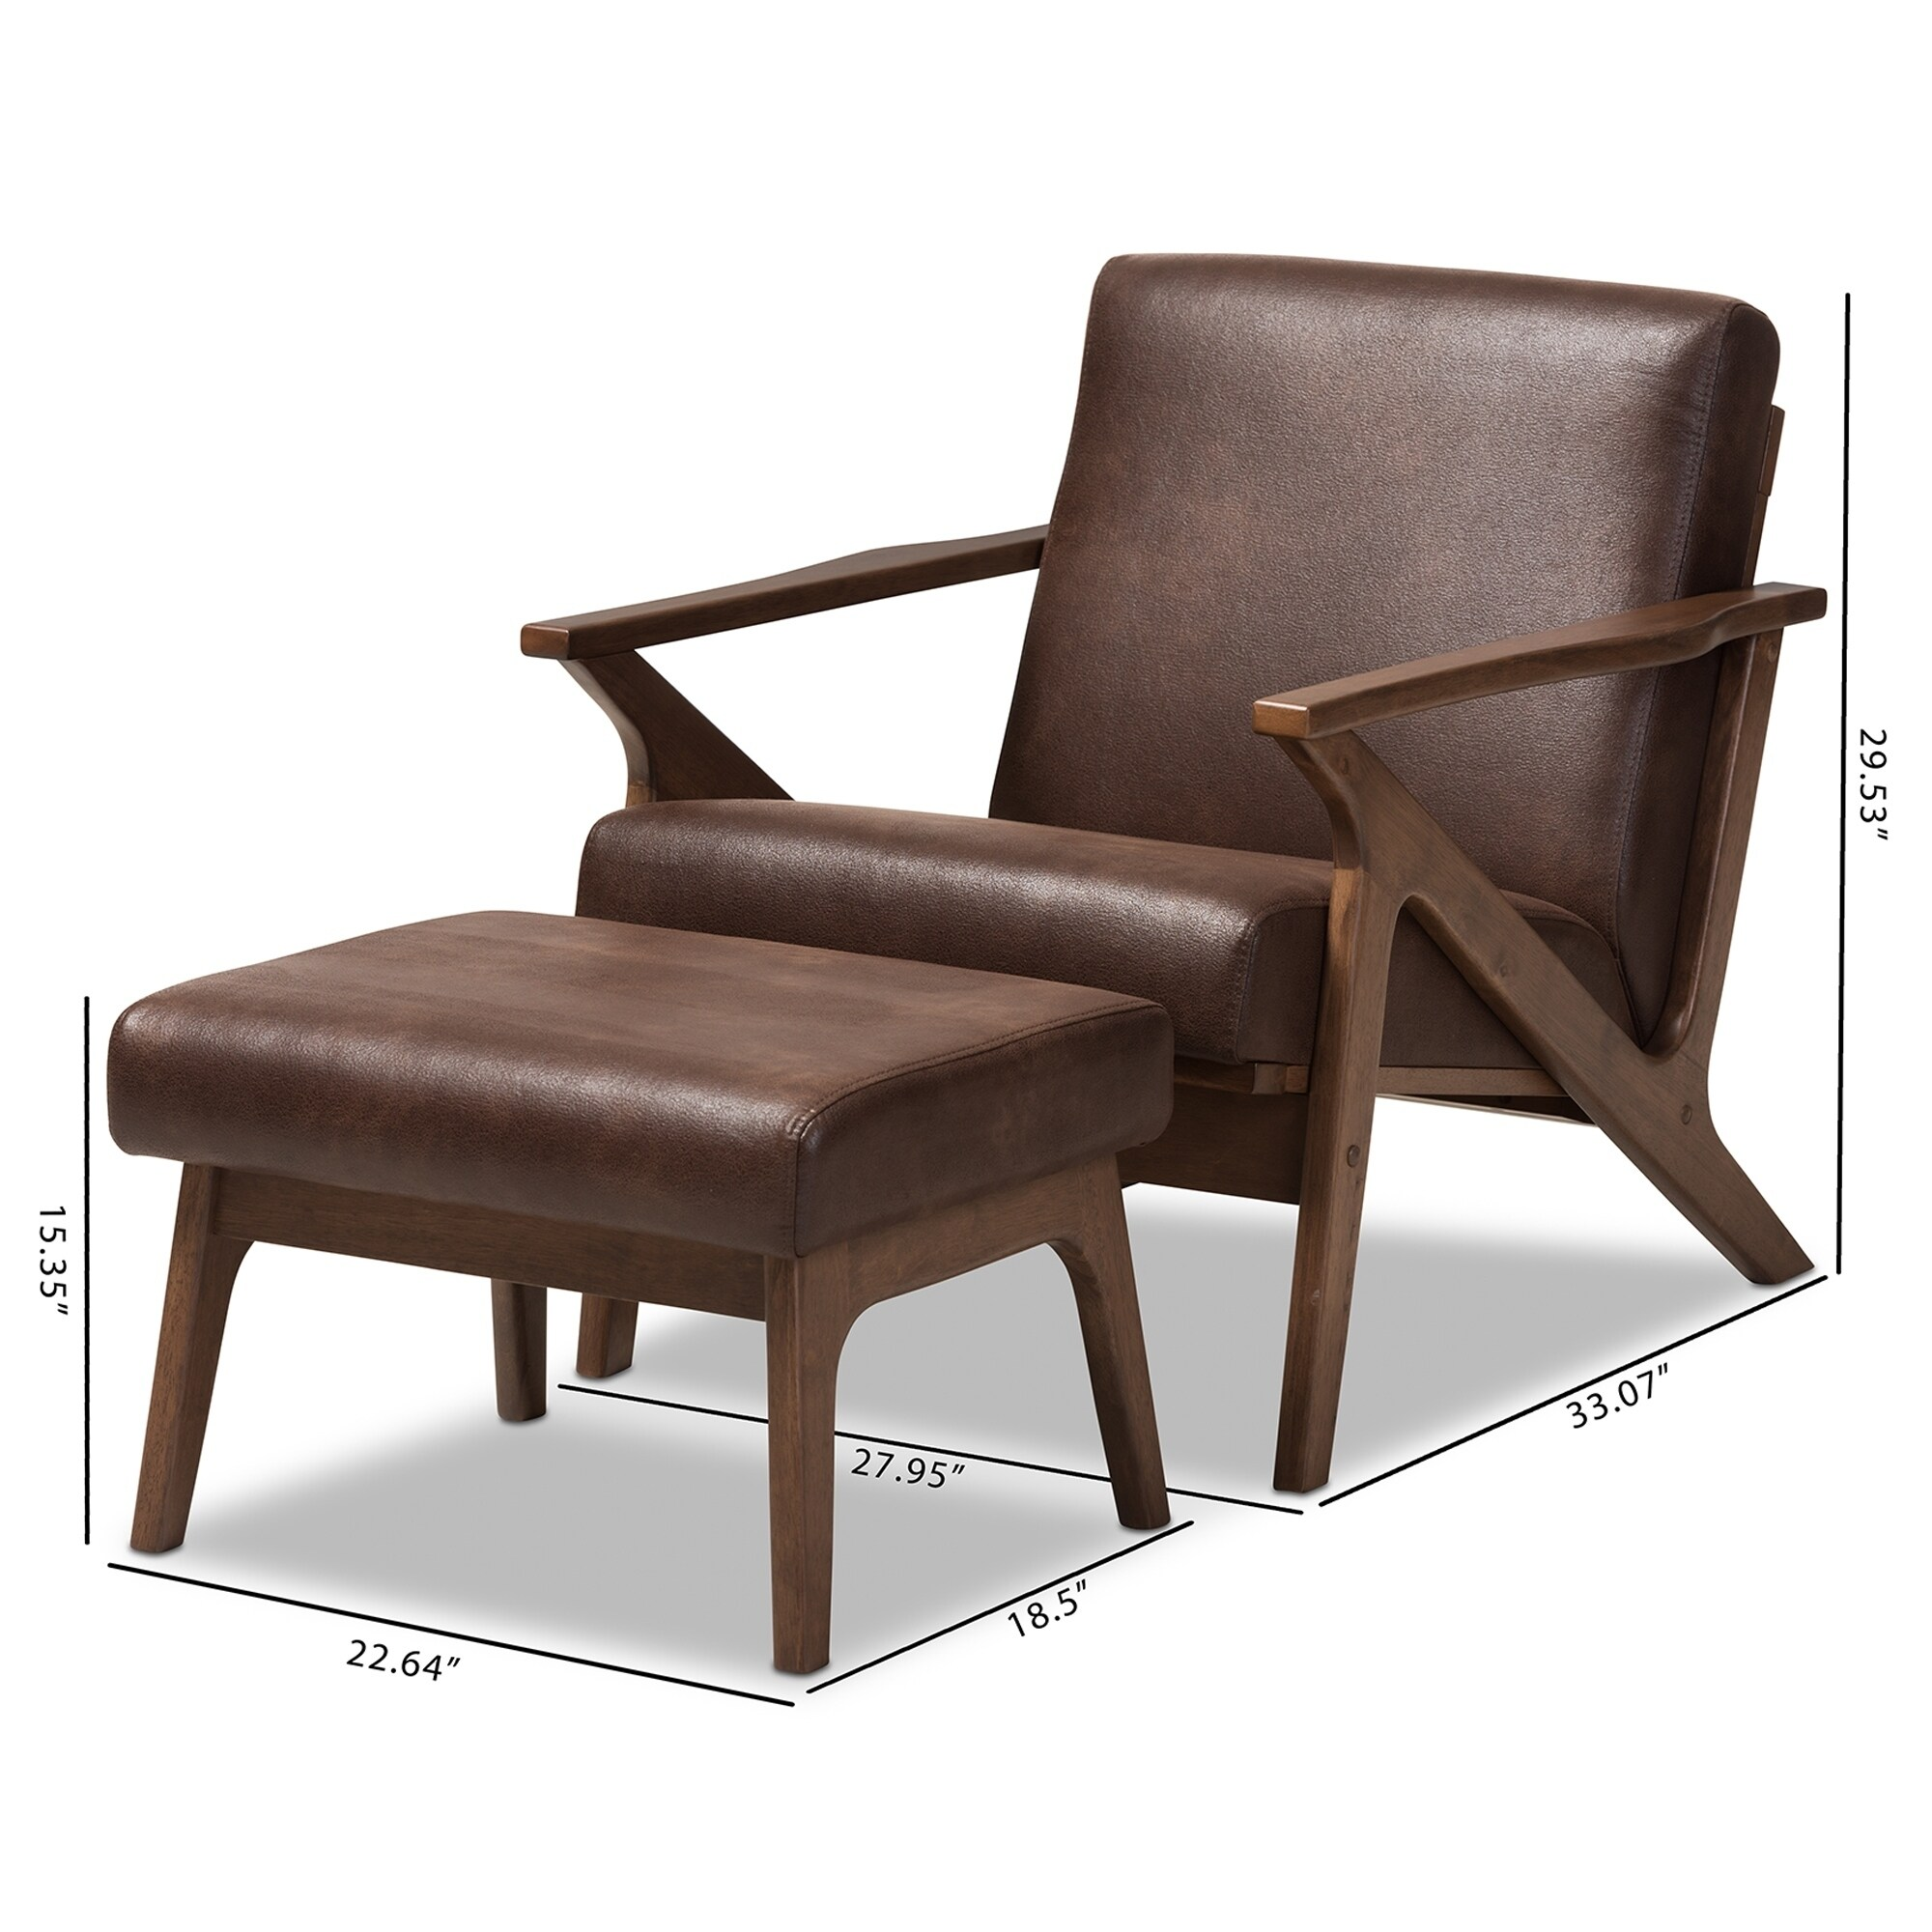 Shop Mid Century Lounge Chair And Ottoman Set By Baxton Studio   On Sale    Free Shipping Today   Overstock   17975300